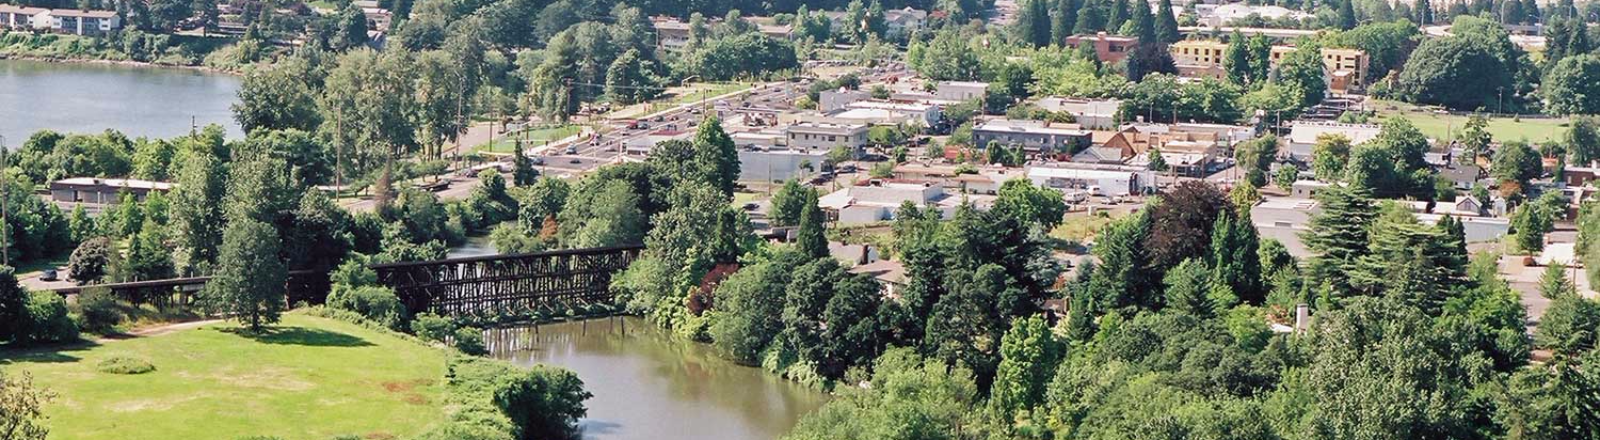 Downtown Milwaukie aerial view with Kellogg Lake forefront, Willamette River to the left and Portland high-rises on horizon.